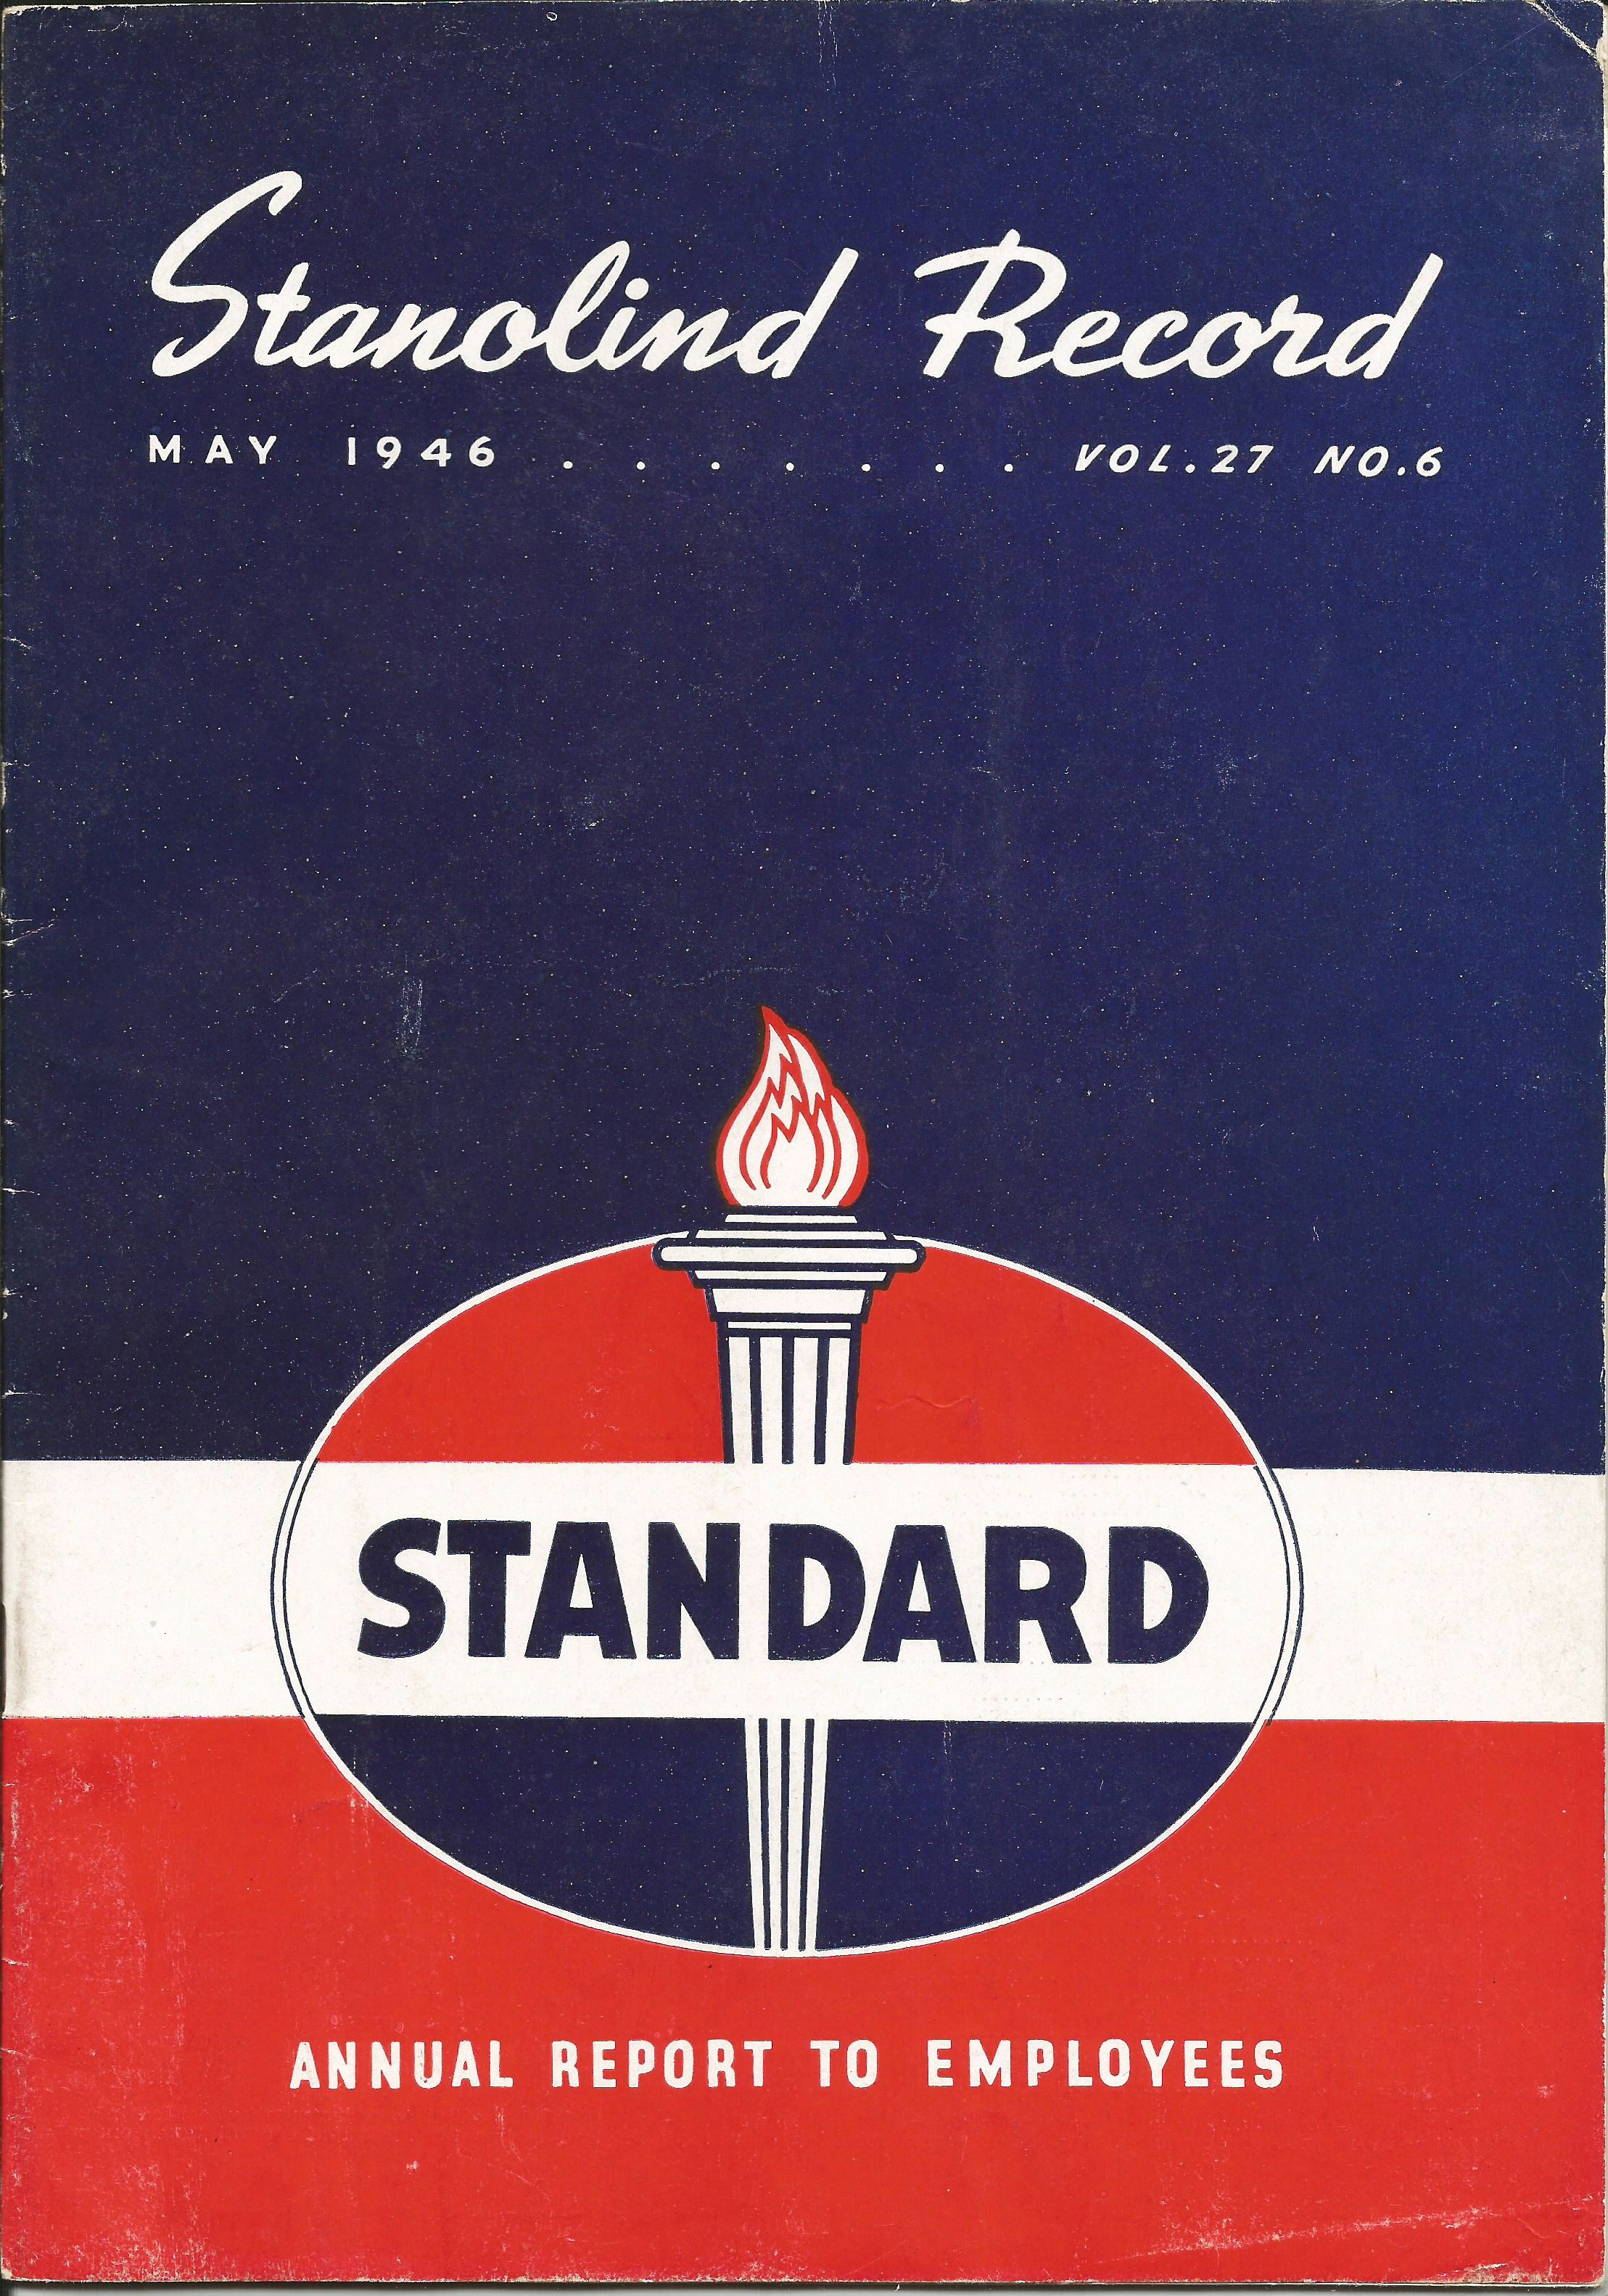 Standolind Record - May 1946